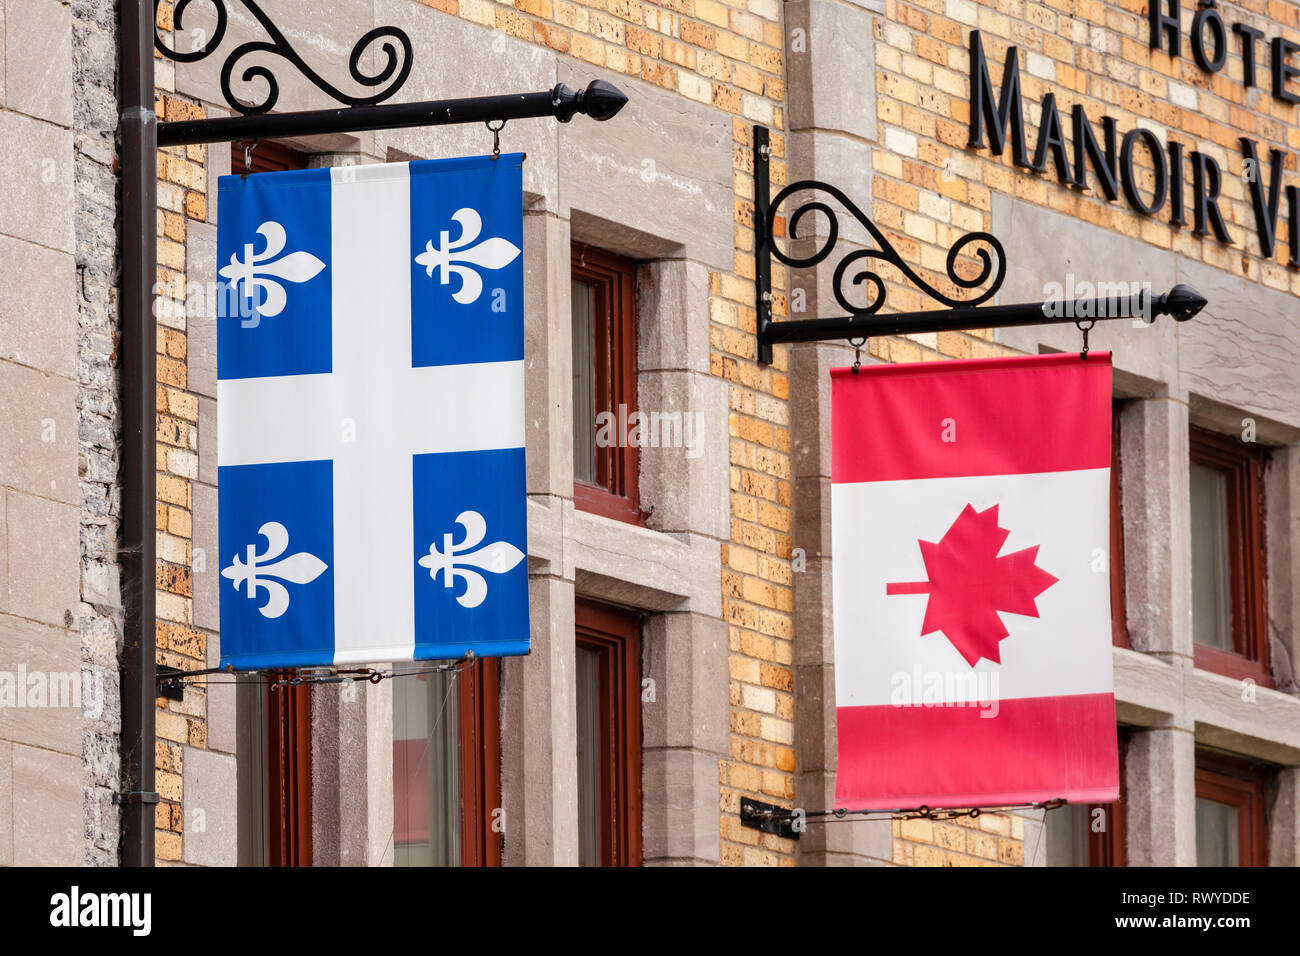 Flag banners hanging from vintage sign brackets on a brick building in Quebec, Canada - Stock Image